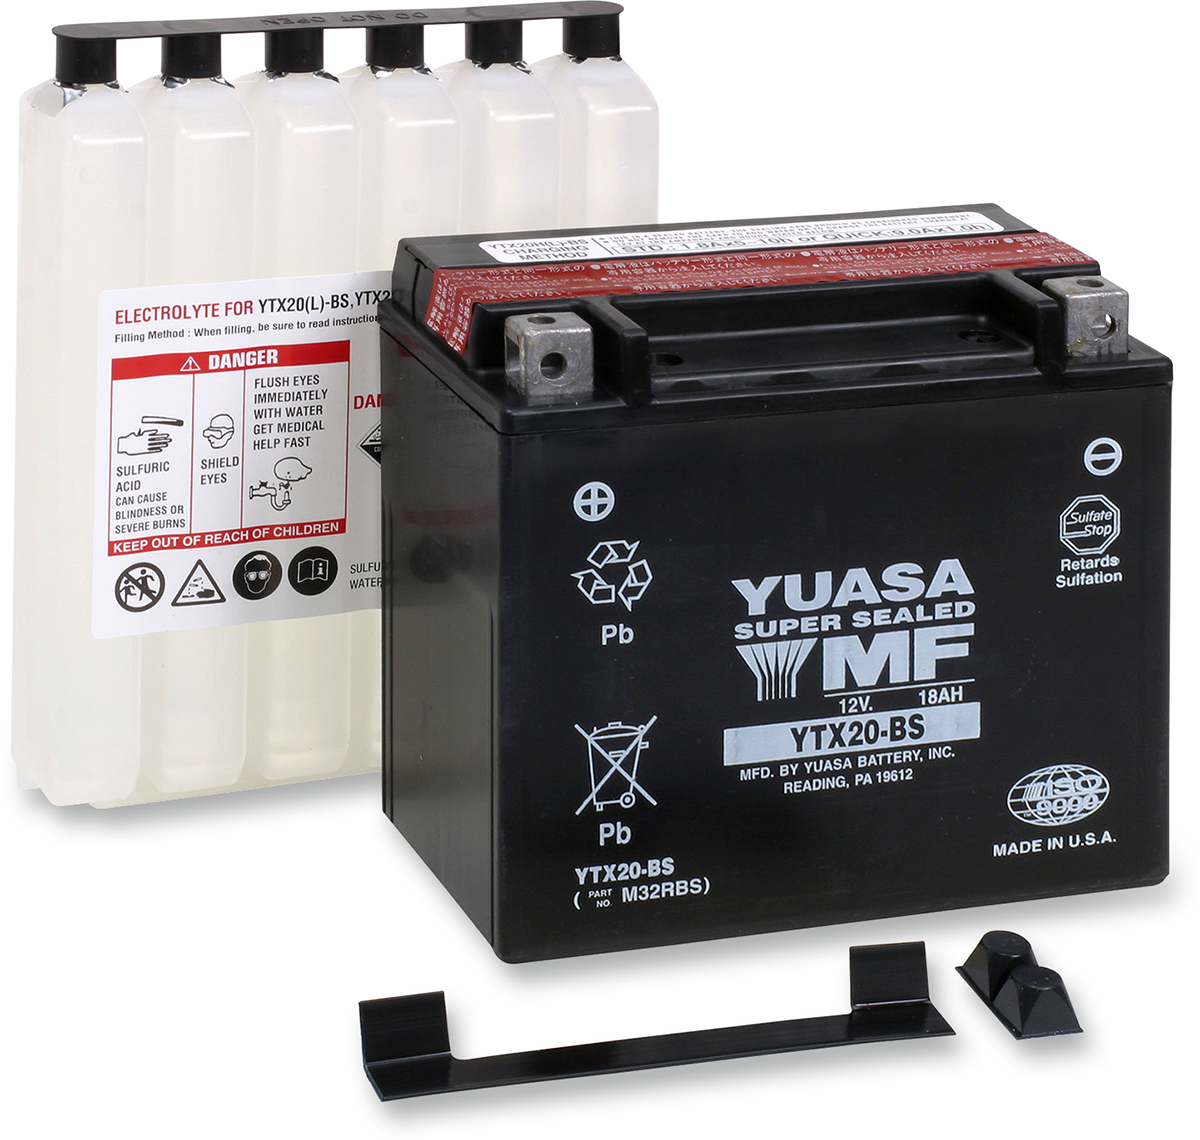 Yuasa 12v Replacement Battery for 79-00 Harley Softail Sportster Honda Ducati